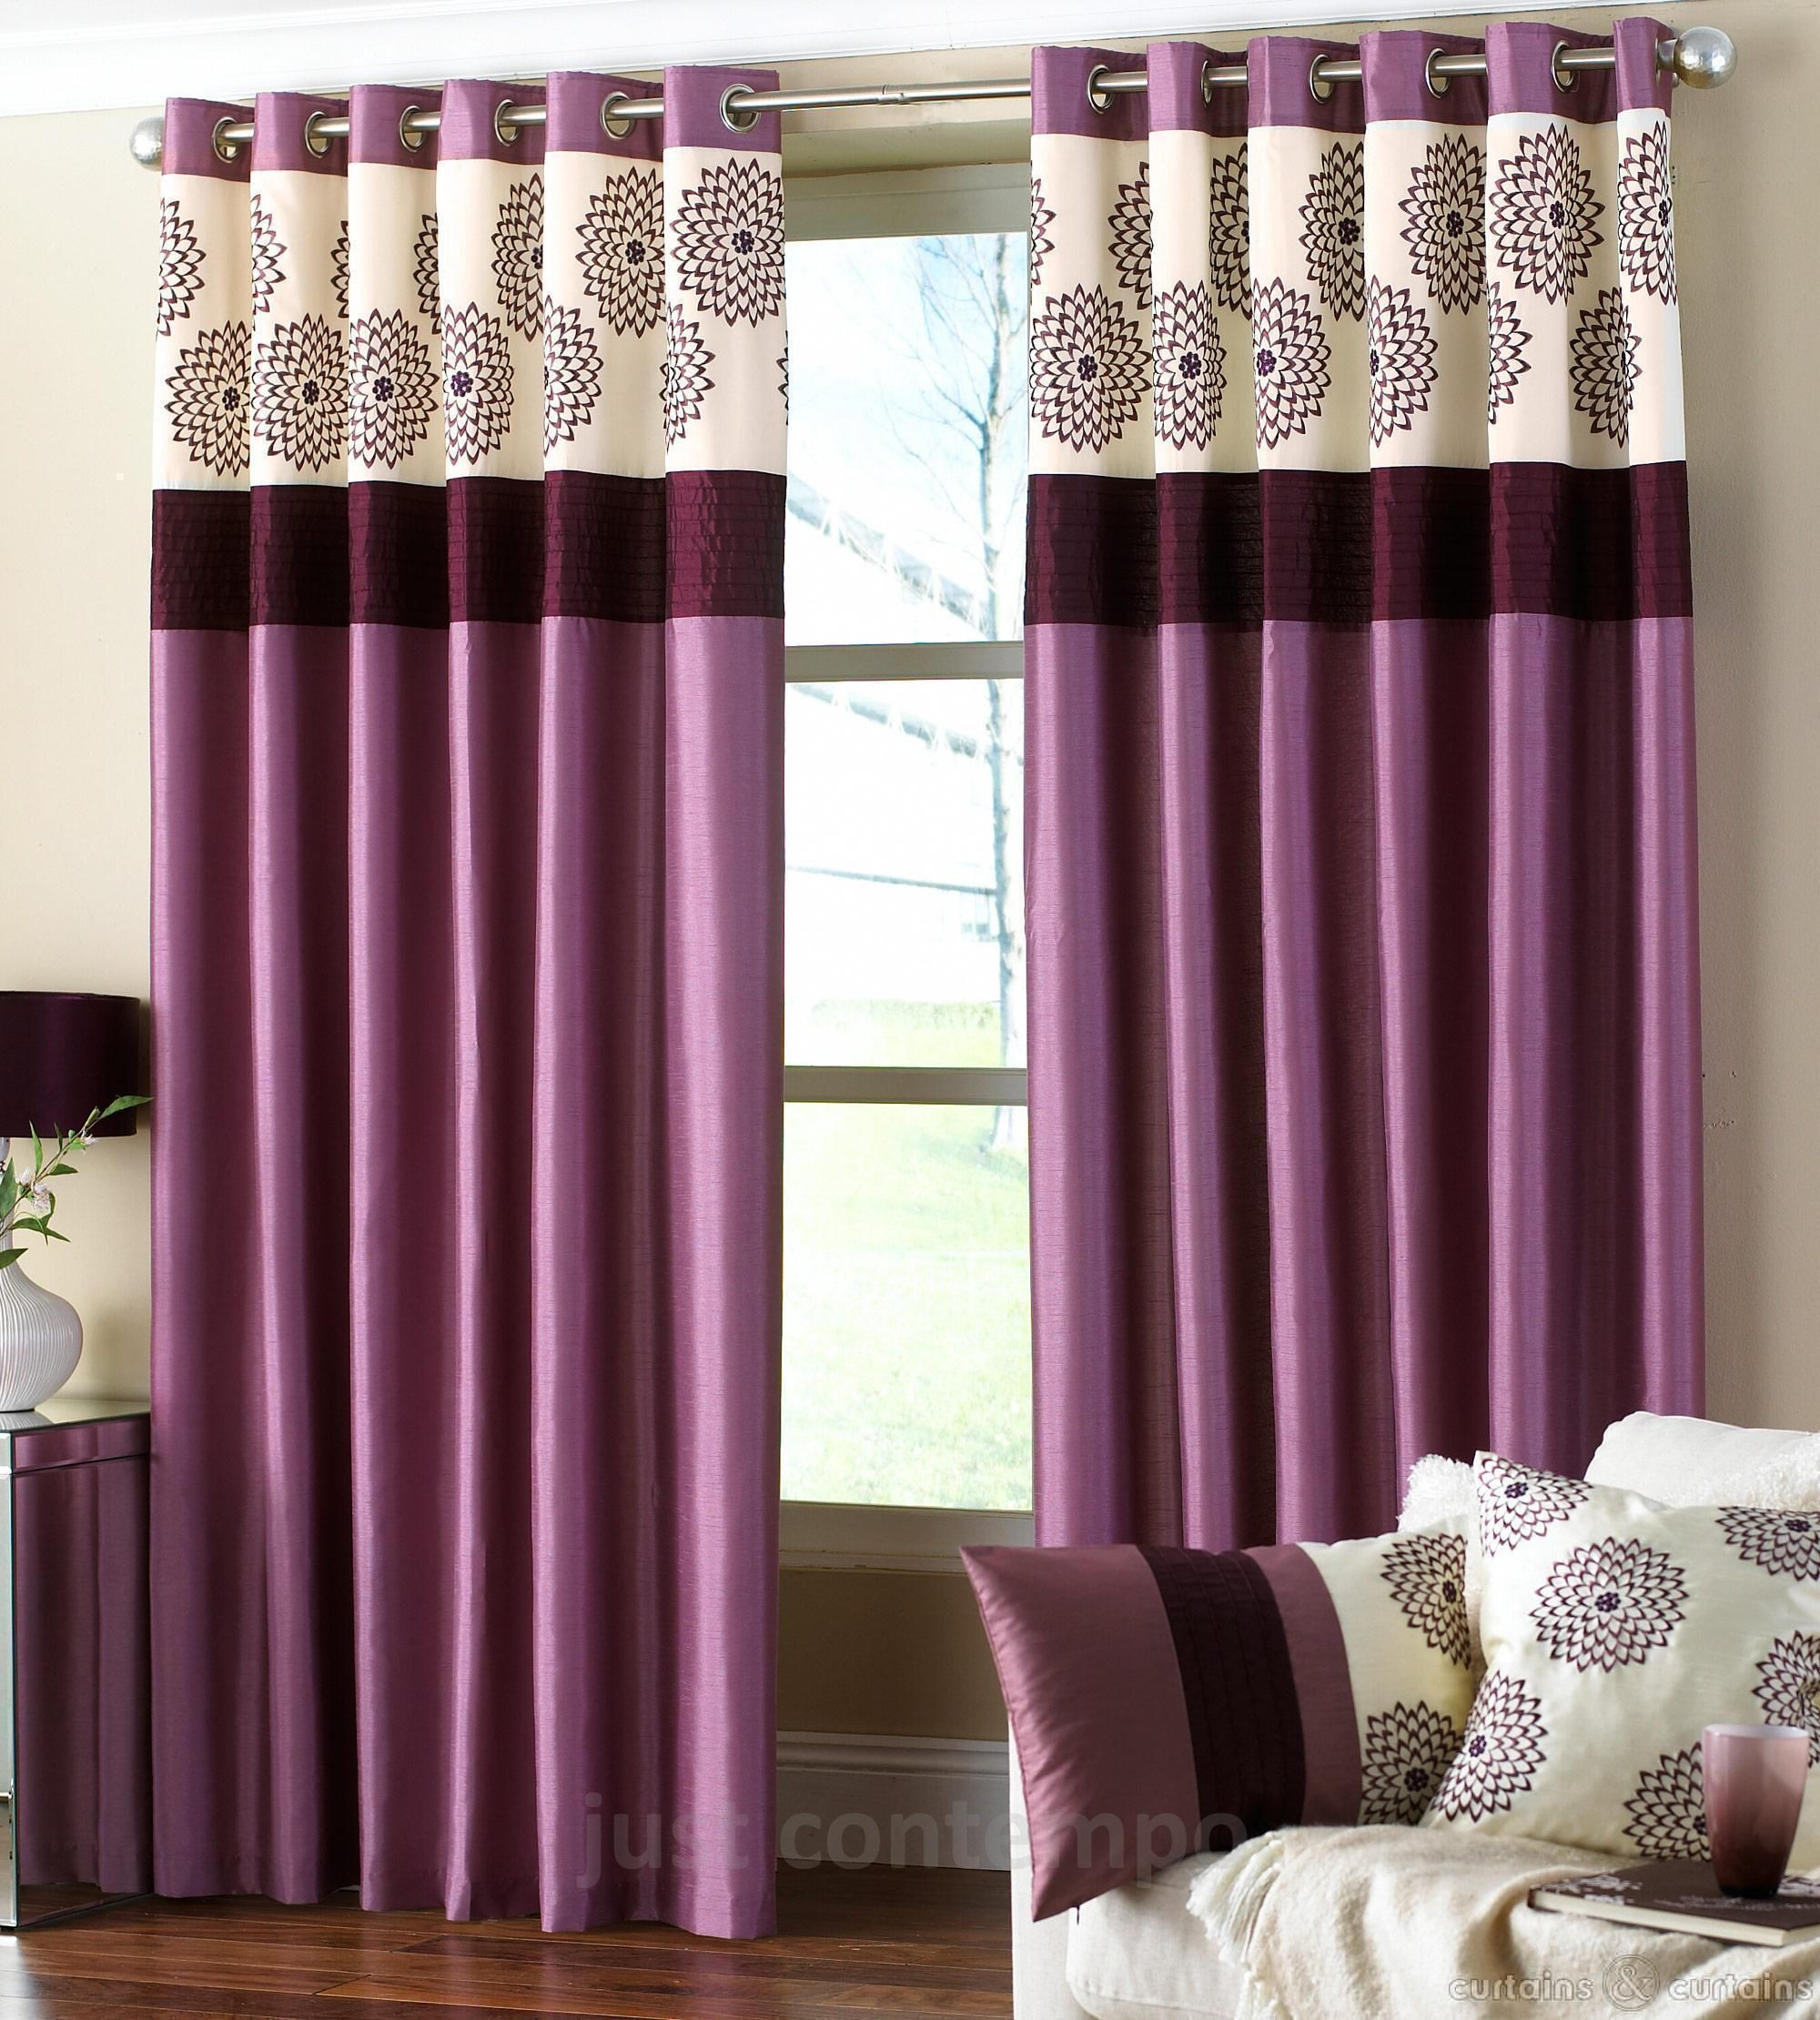 modern curtains for living room uk false ceiling design india purple curtain house into home in